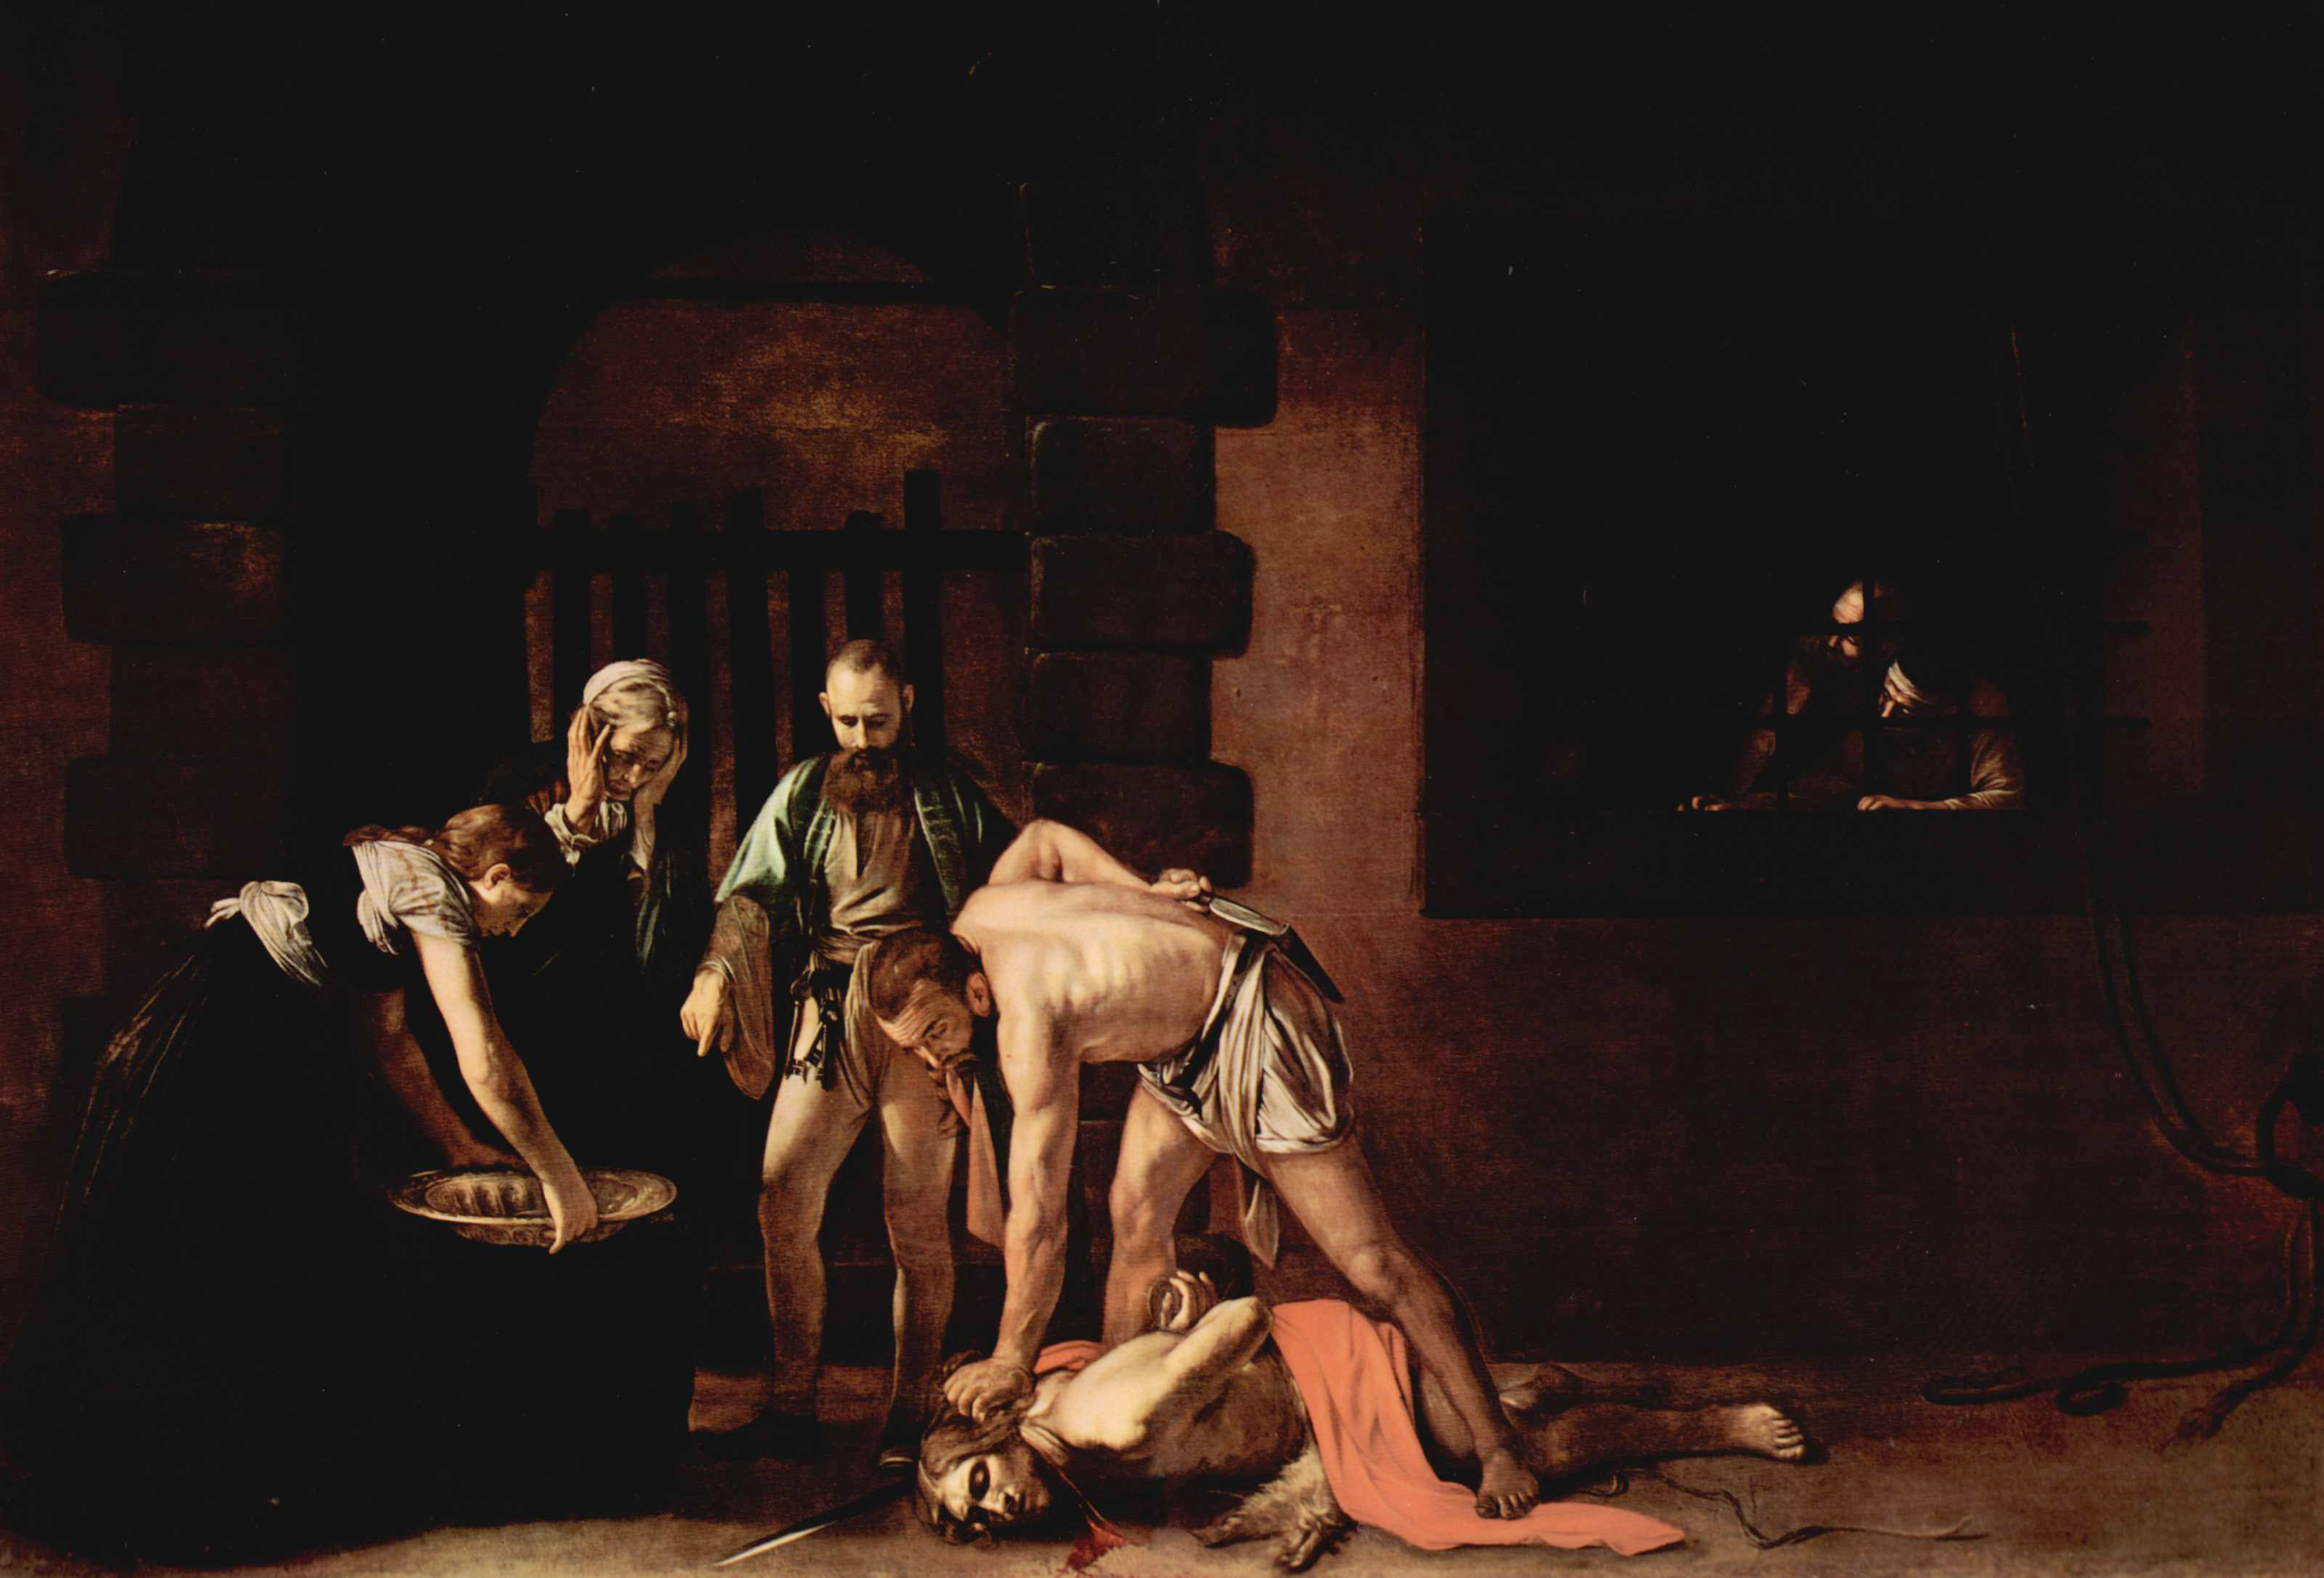 http://upload.wikimedia.org/wikipedia/commons/4/42/Michelangelo_Caravaggio_021.jpg